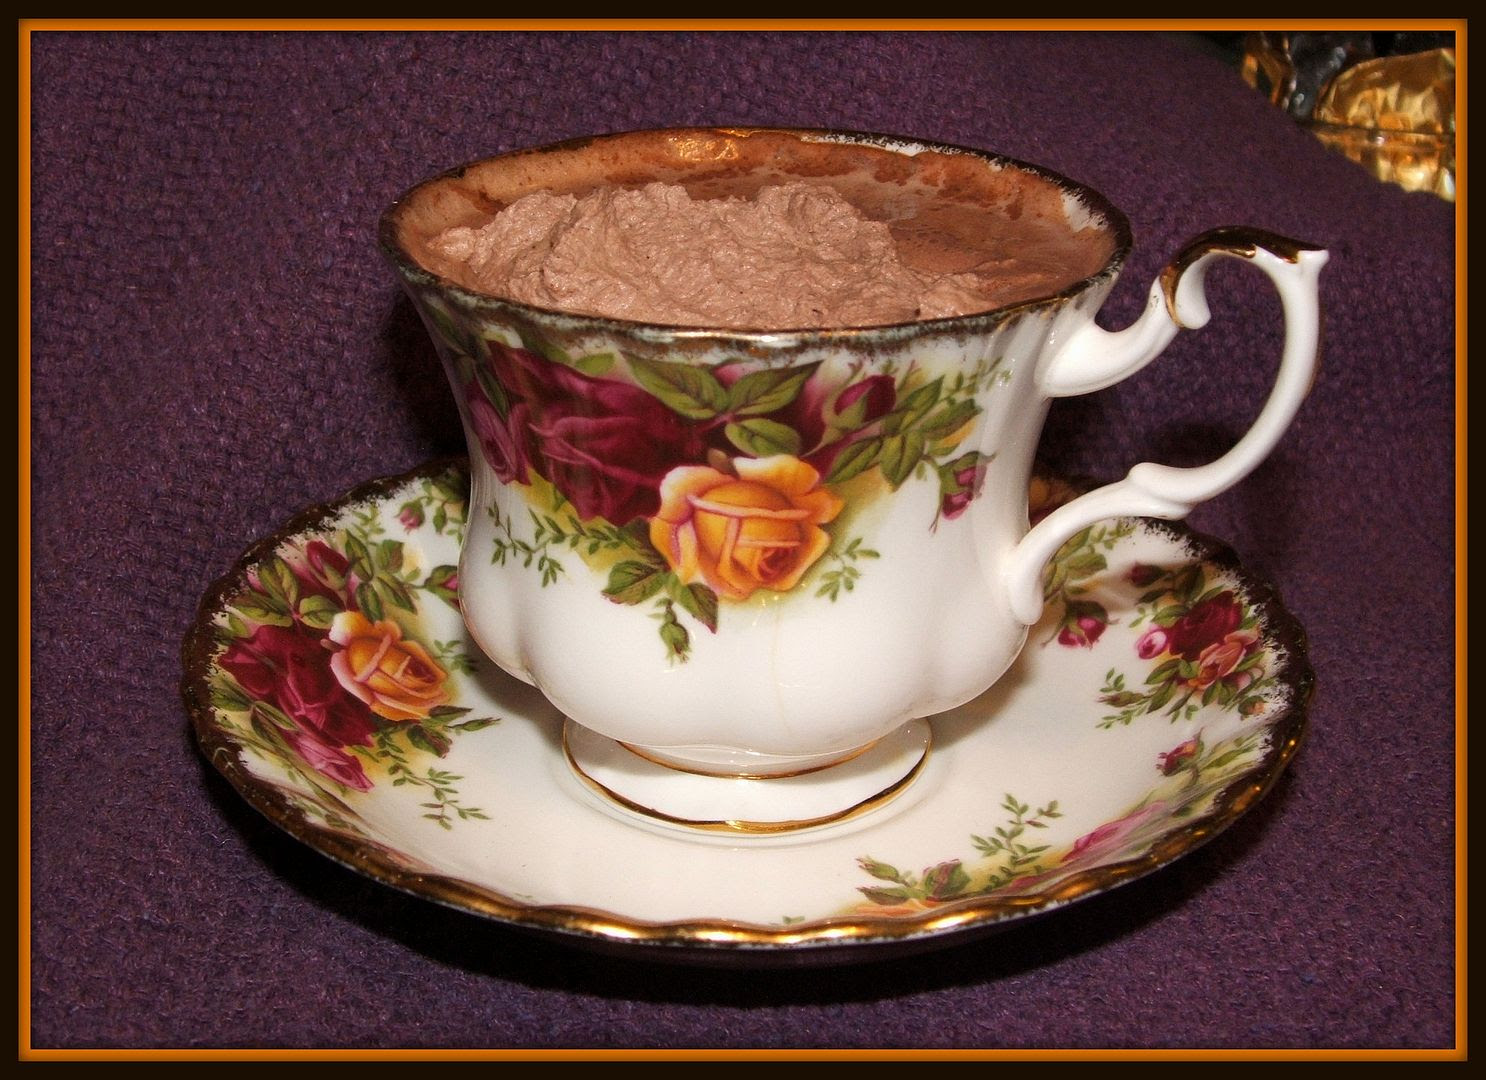 Orange Hot Chocolate by Angie Ouellette-Tower for godsgrowinggarden.com photo 015_zpsedf0d455.jpg